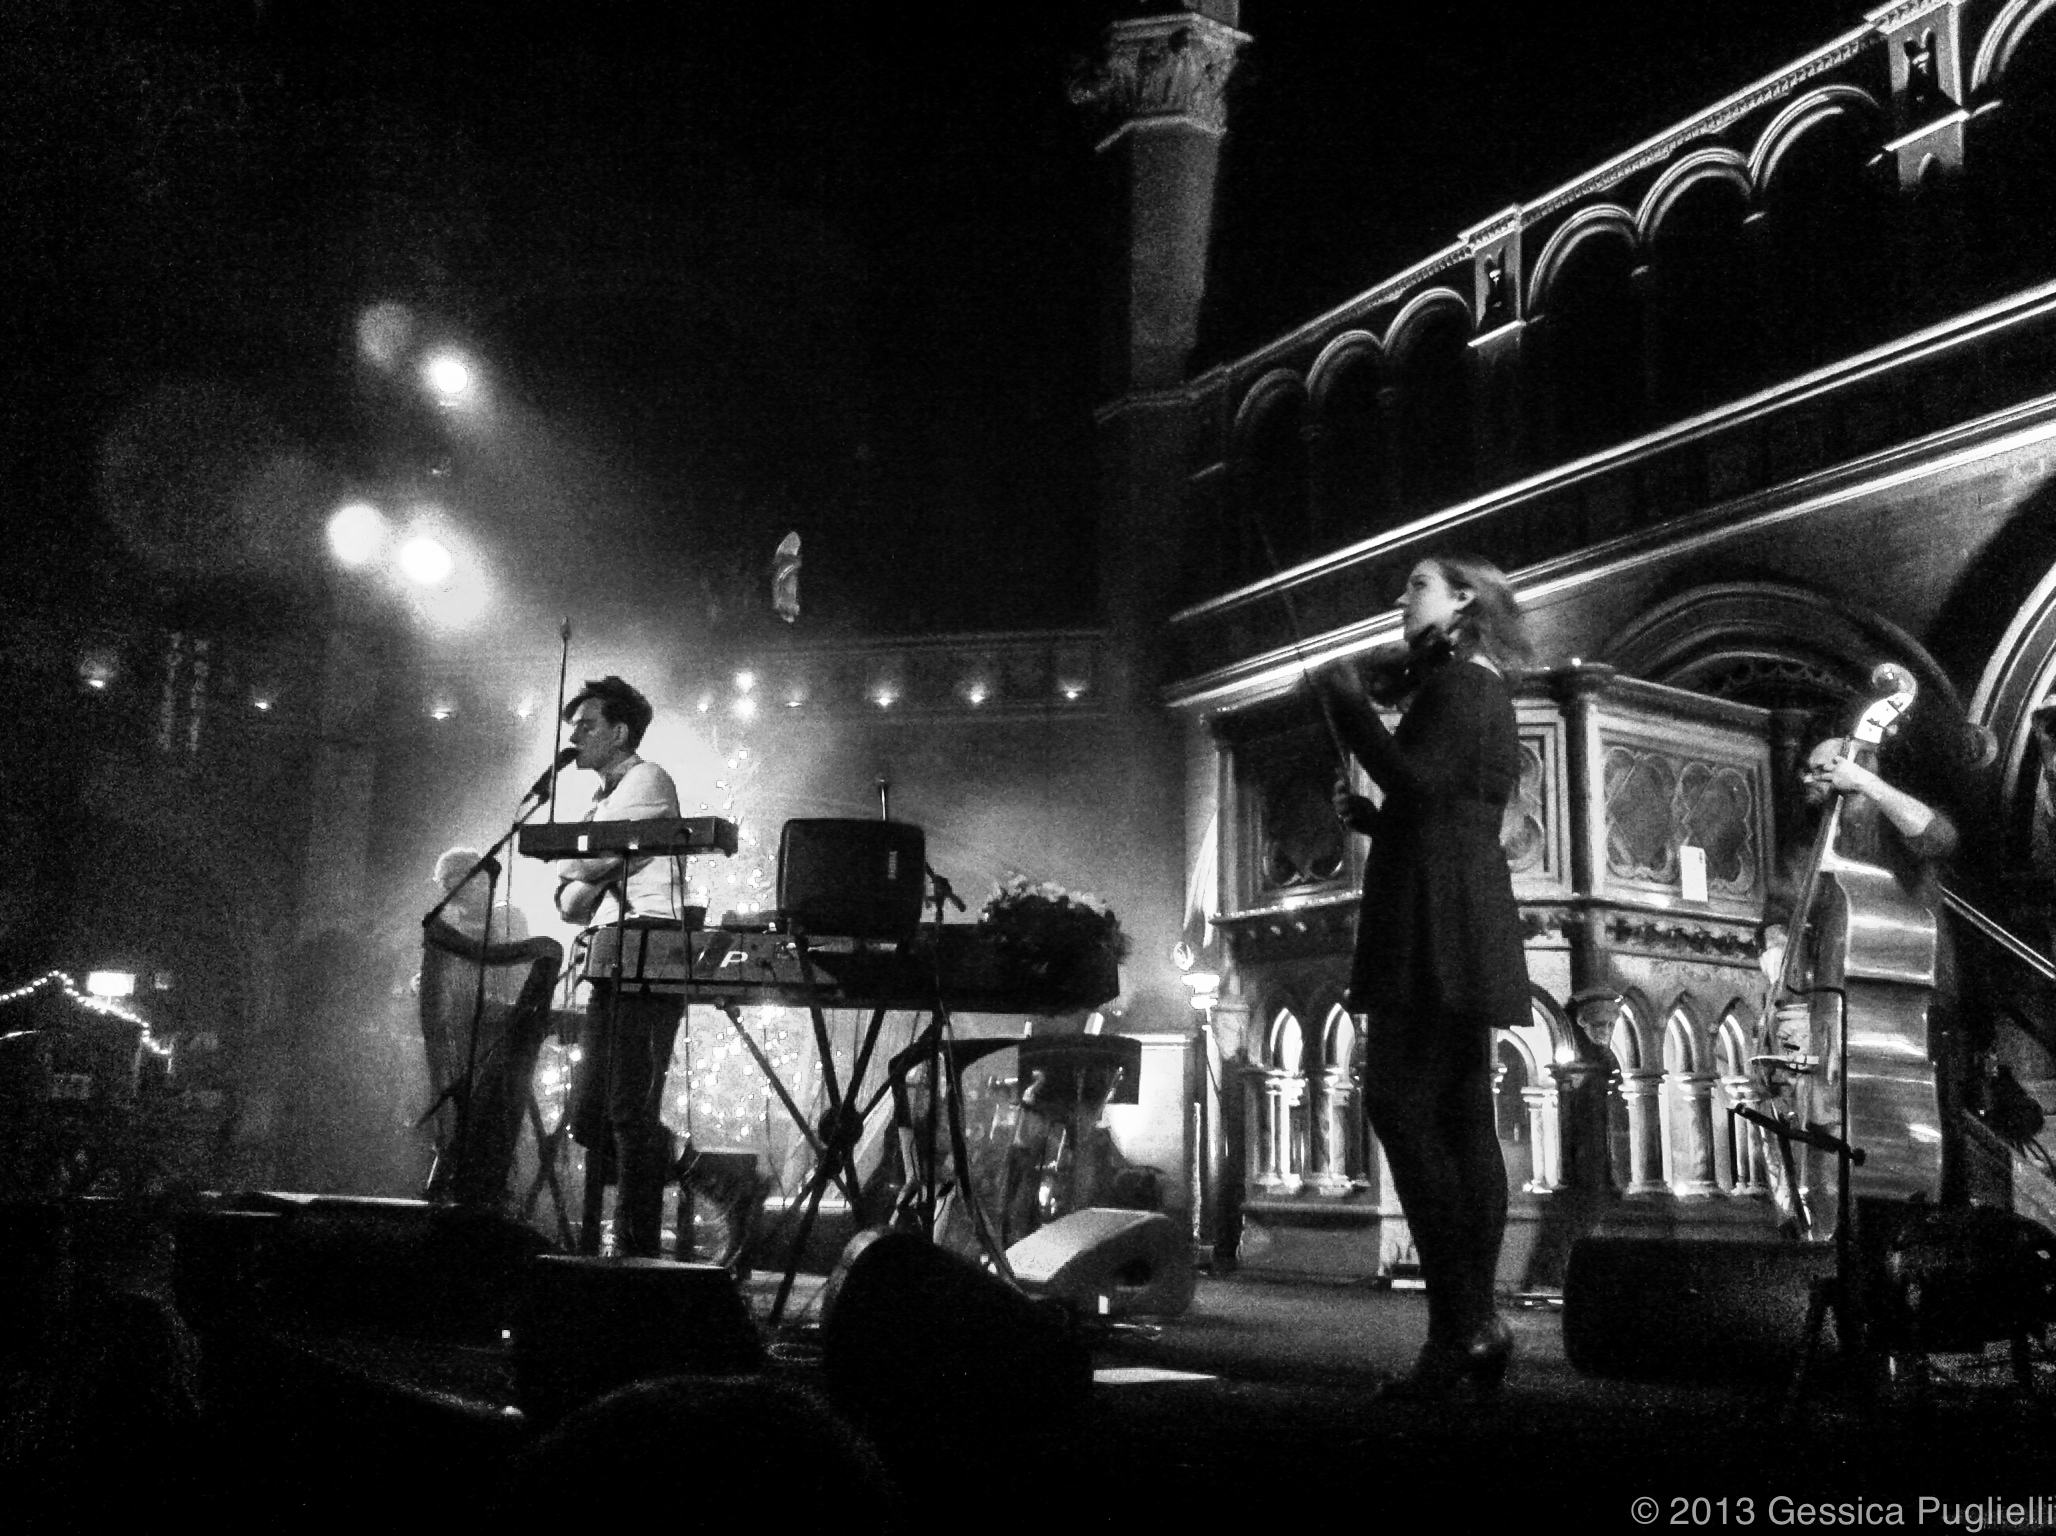 Patrick Wolf live @ the Union Chapel in London